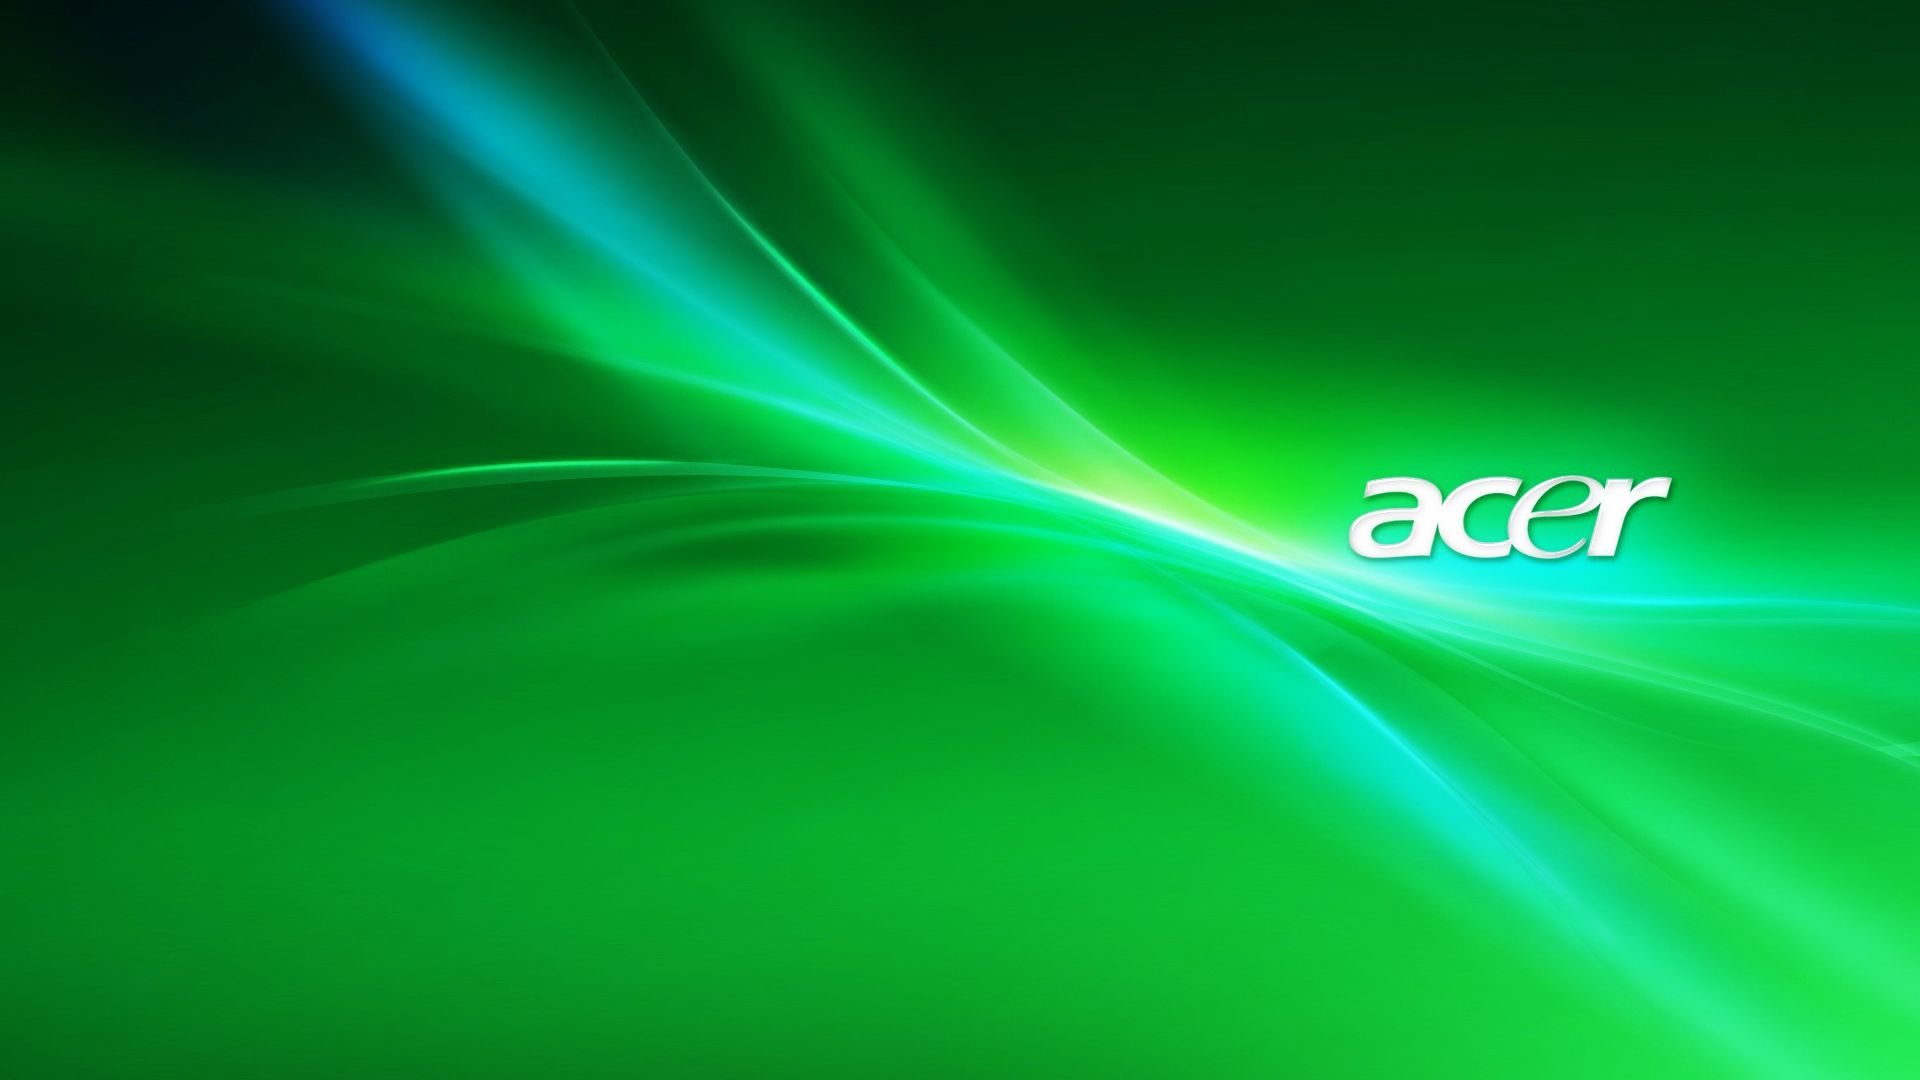 Acer Wallpapers - Wallpaper Cave